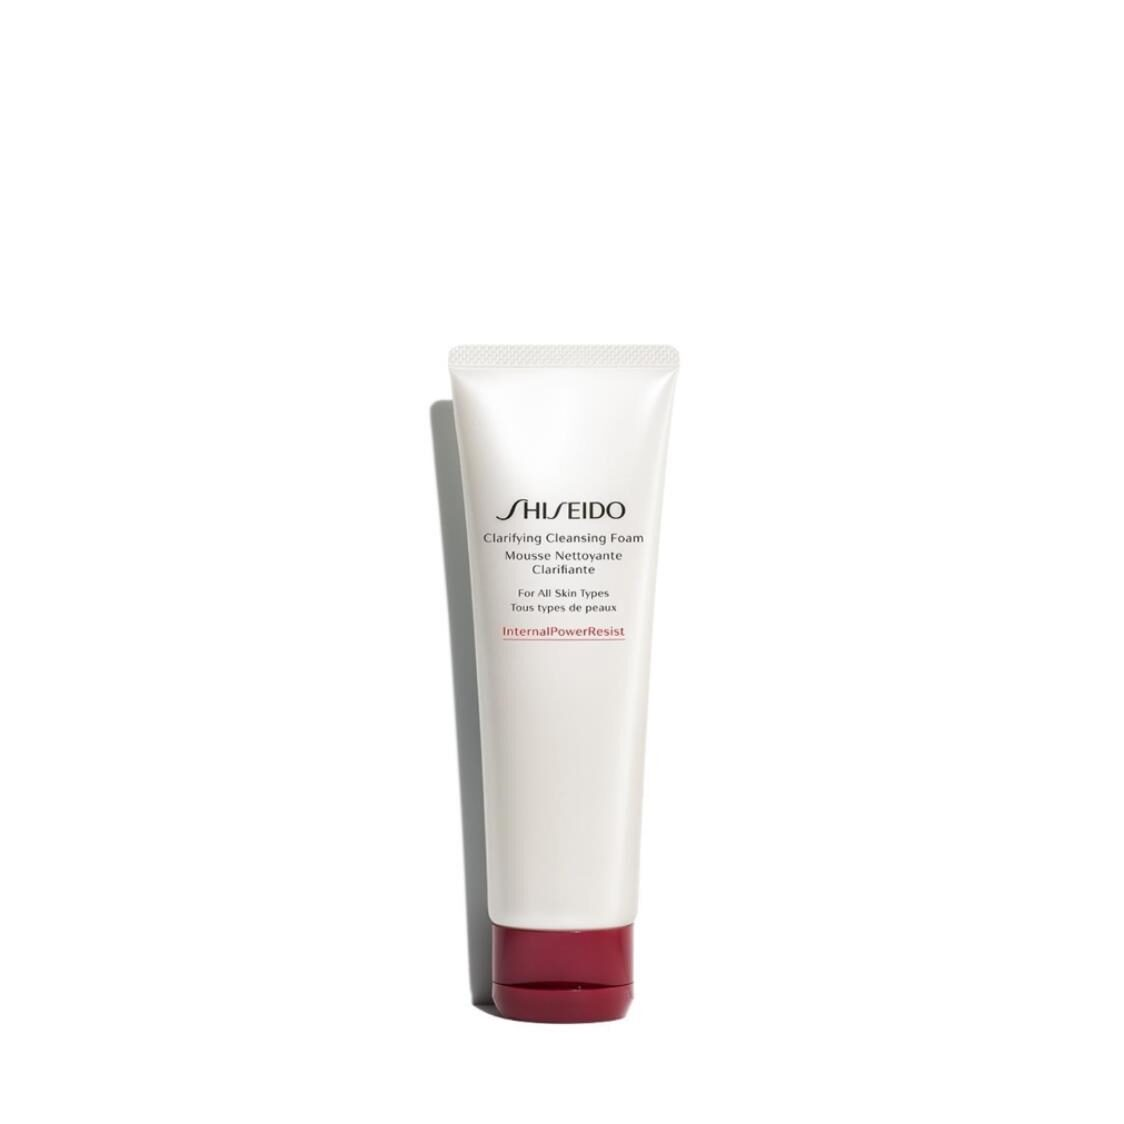 Shiseido Clarifying Cleansing Foam